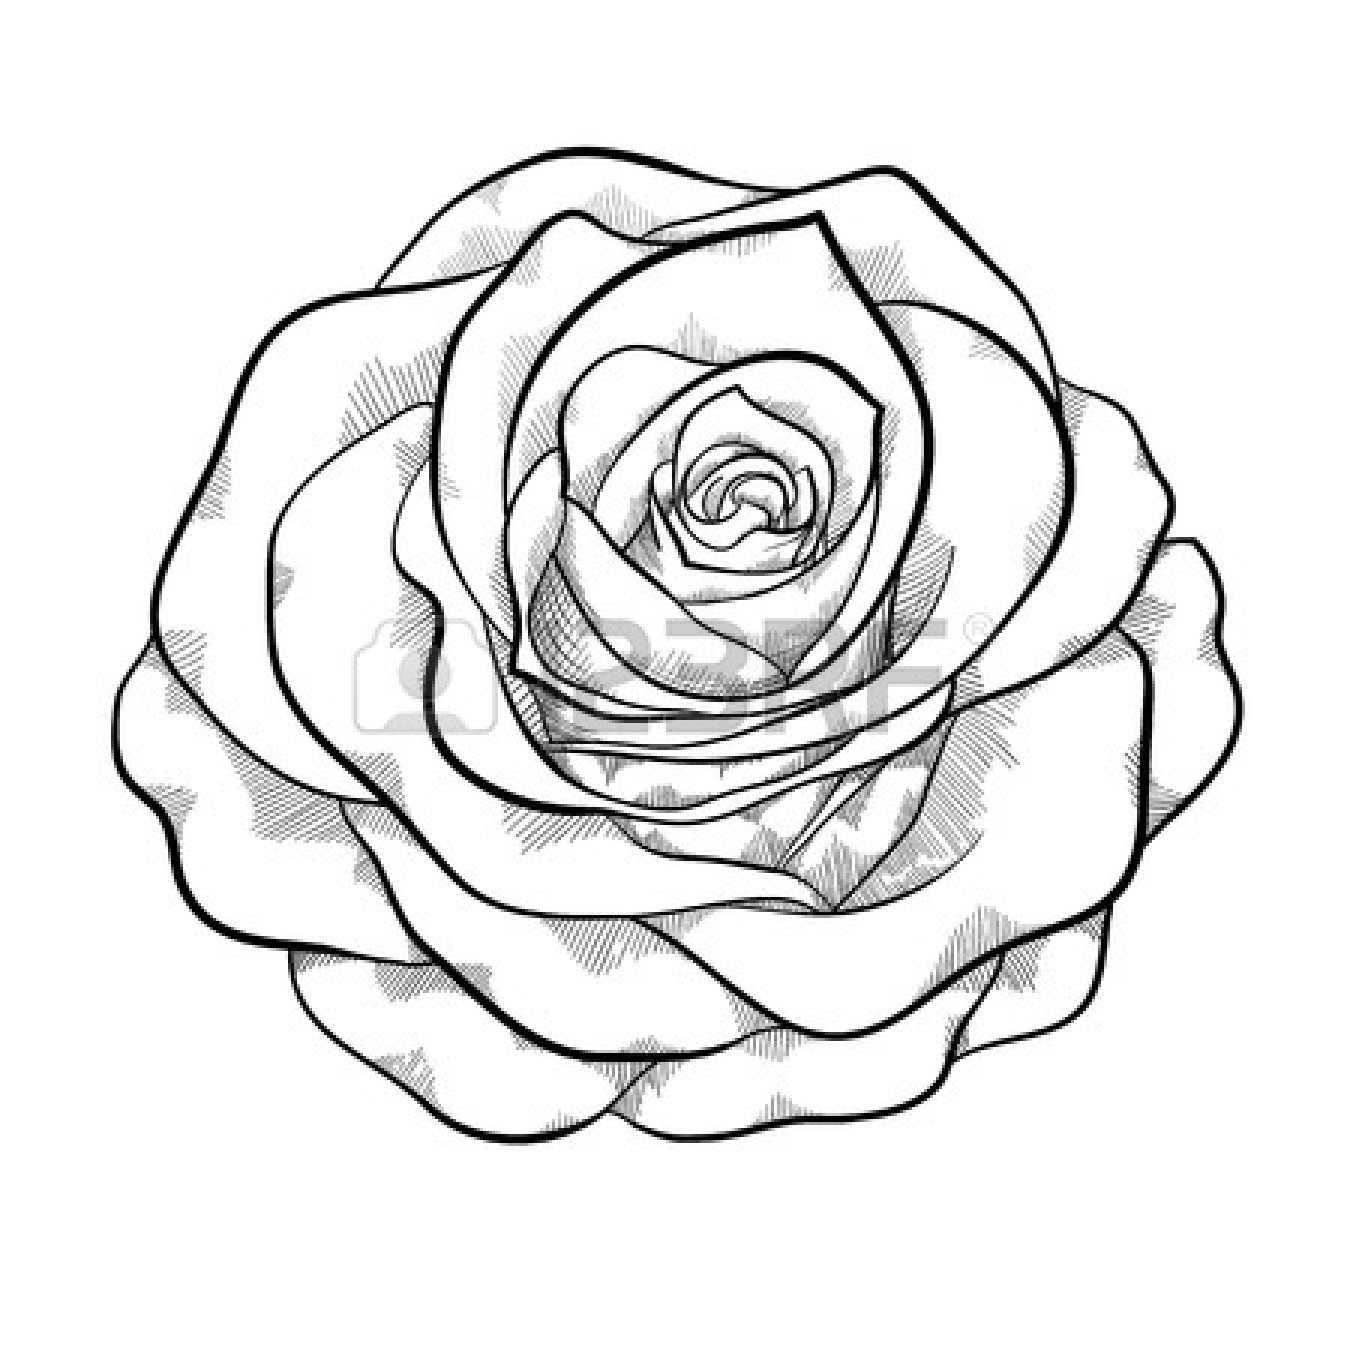 1350x1350 Simple Black And White Rose Clipart